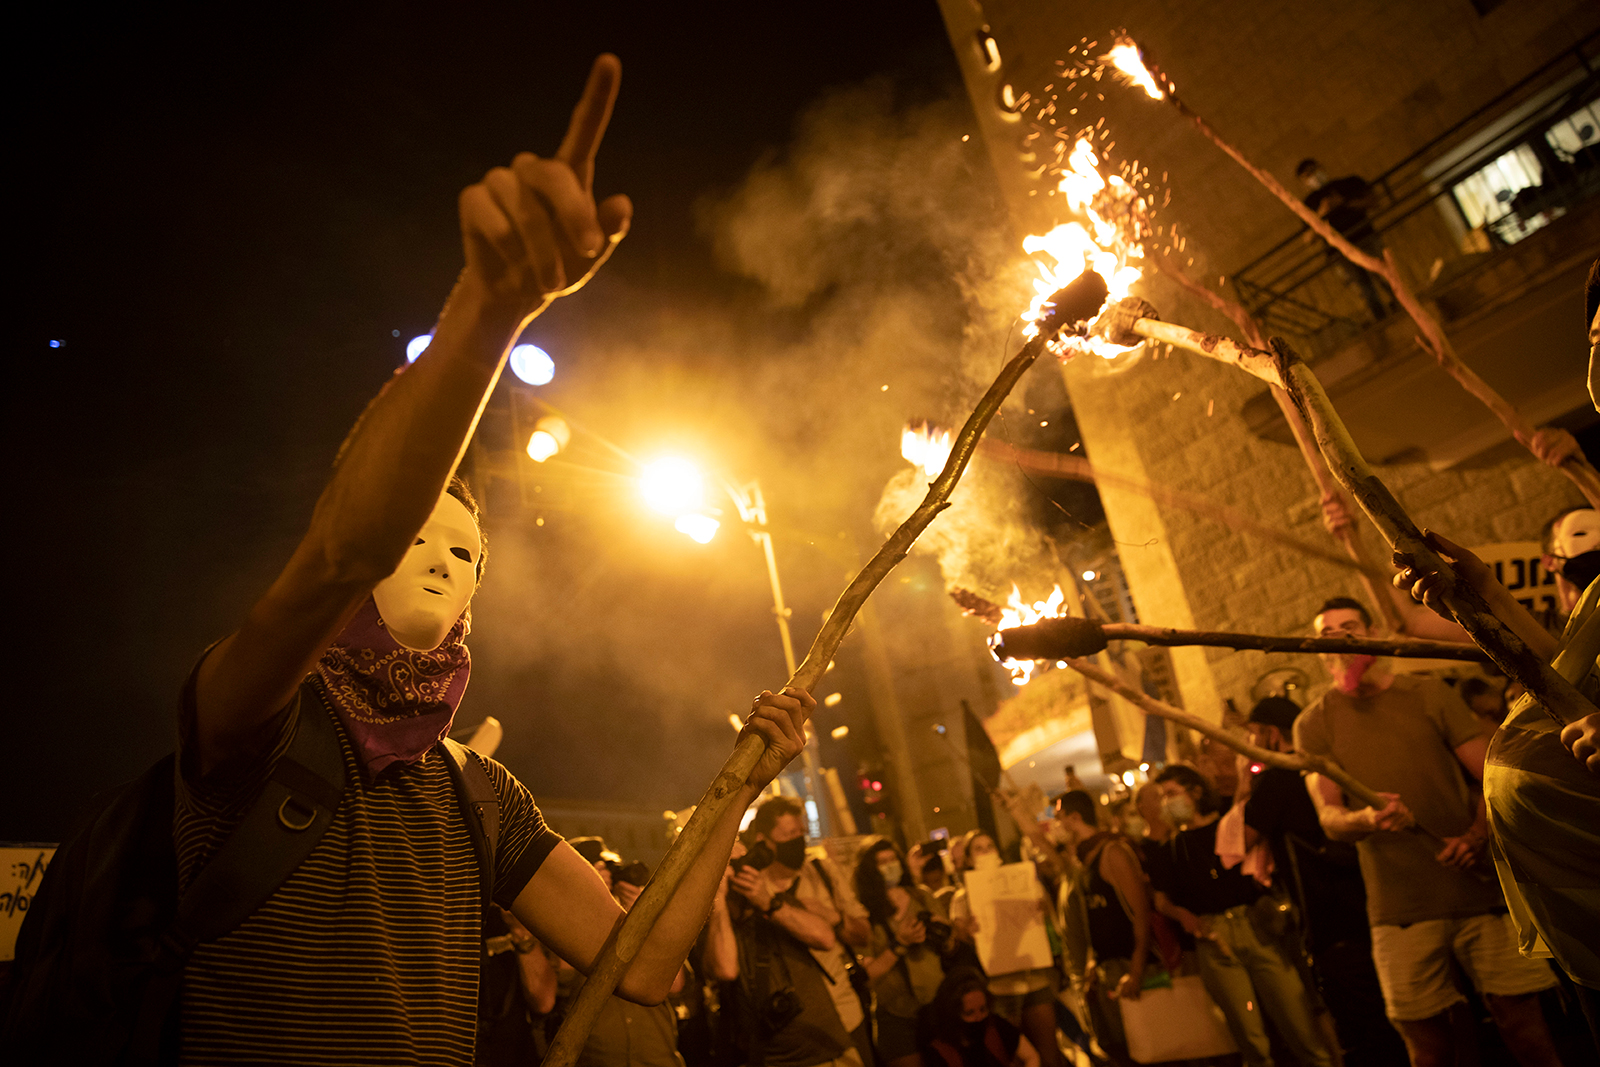 Protesters light torches during a protest against Israel's Prime Minister Benjamin Netanyahu outside his residence in Jerusalem, on August 1.